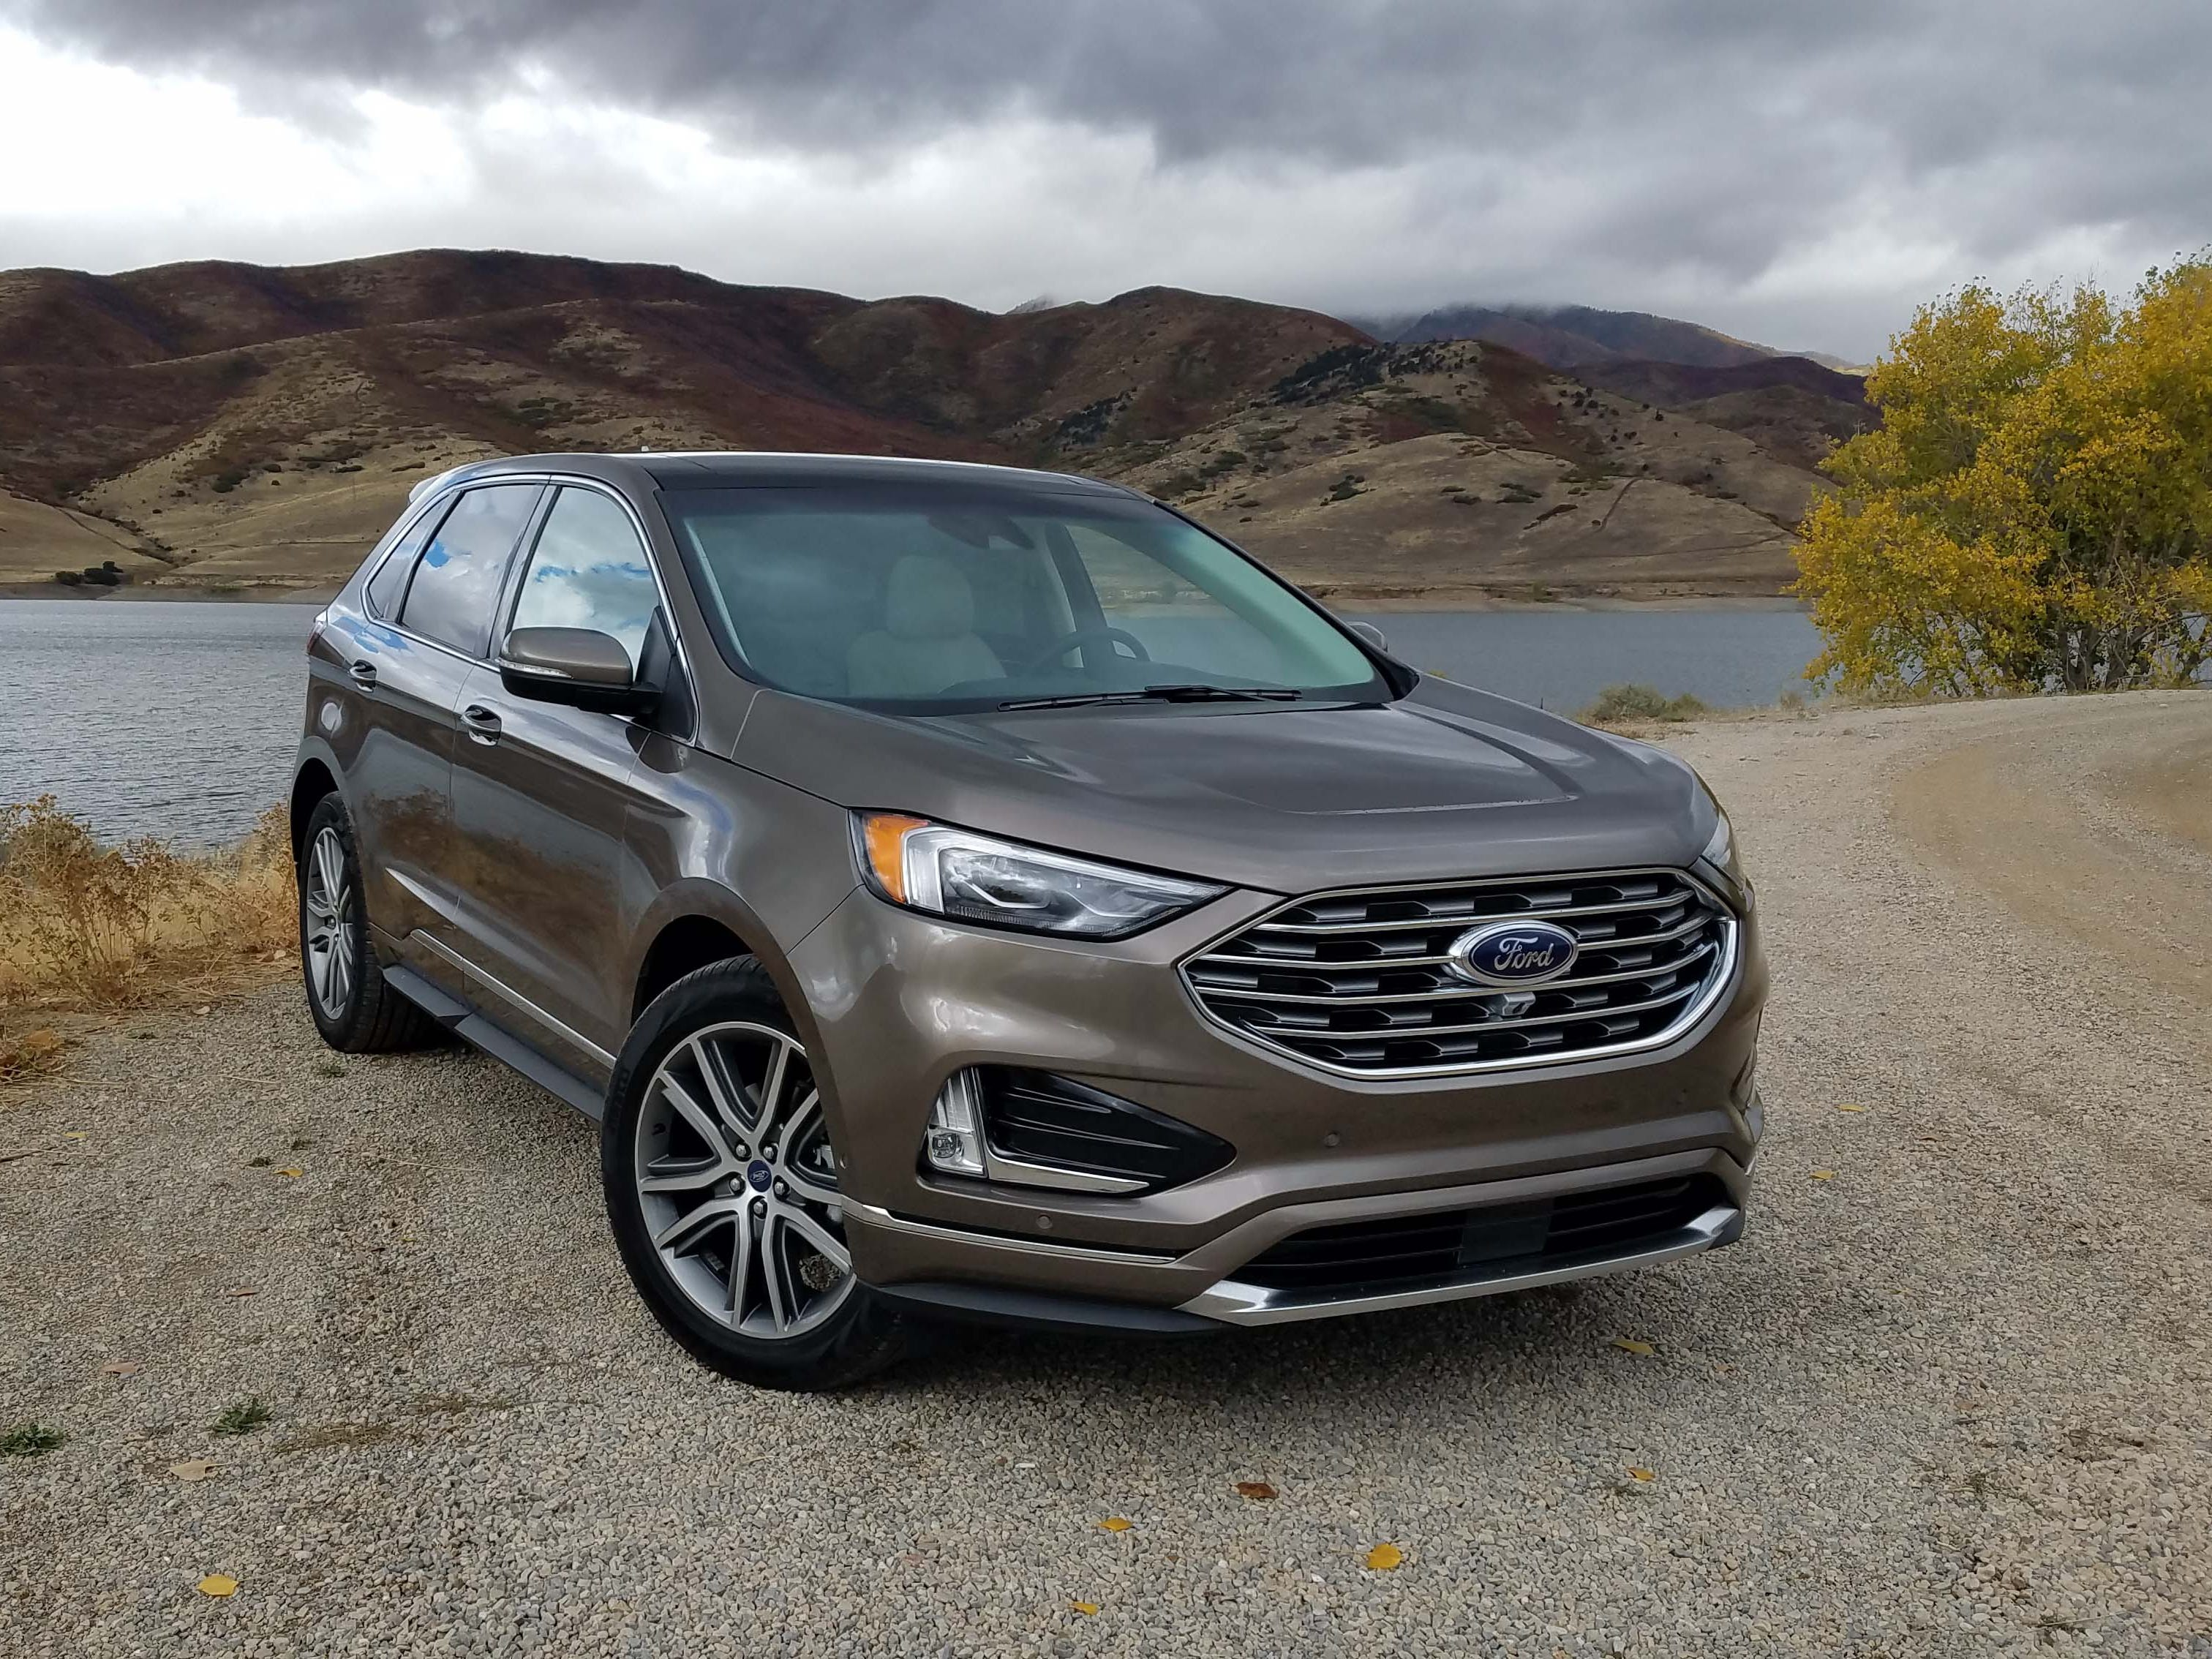 Chrome highlights. The 2019 Ford Edge comes with nice chrome details - where the Edge ST performance model comes menacing black trim.